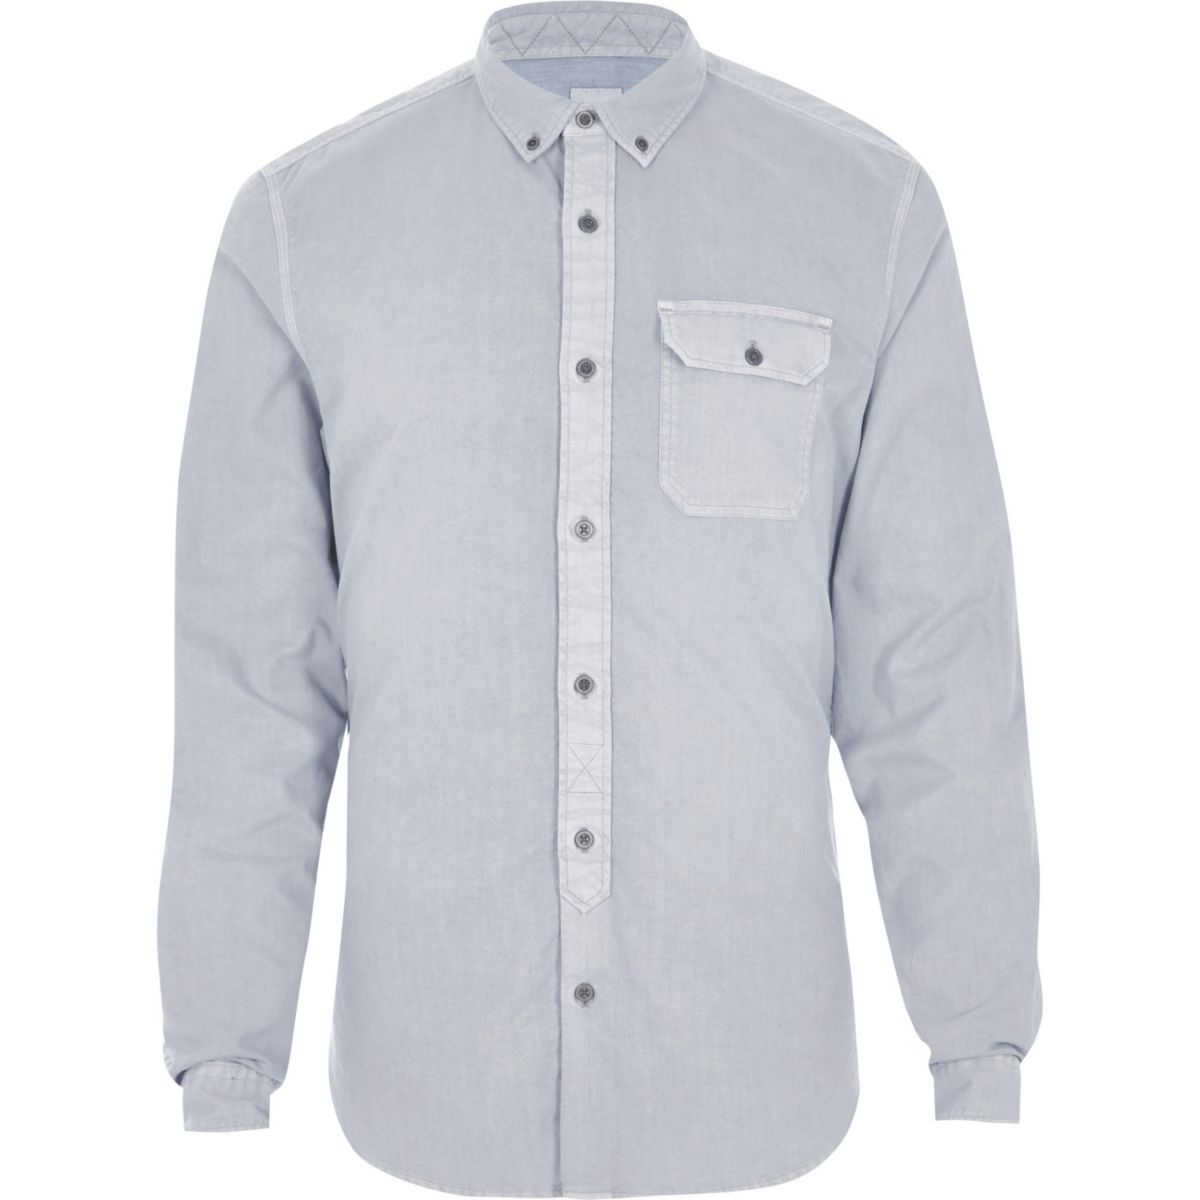 Grey washed slim fit button down shirt shirts sale men for Grey button down shirt